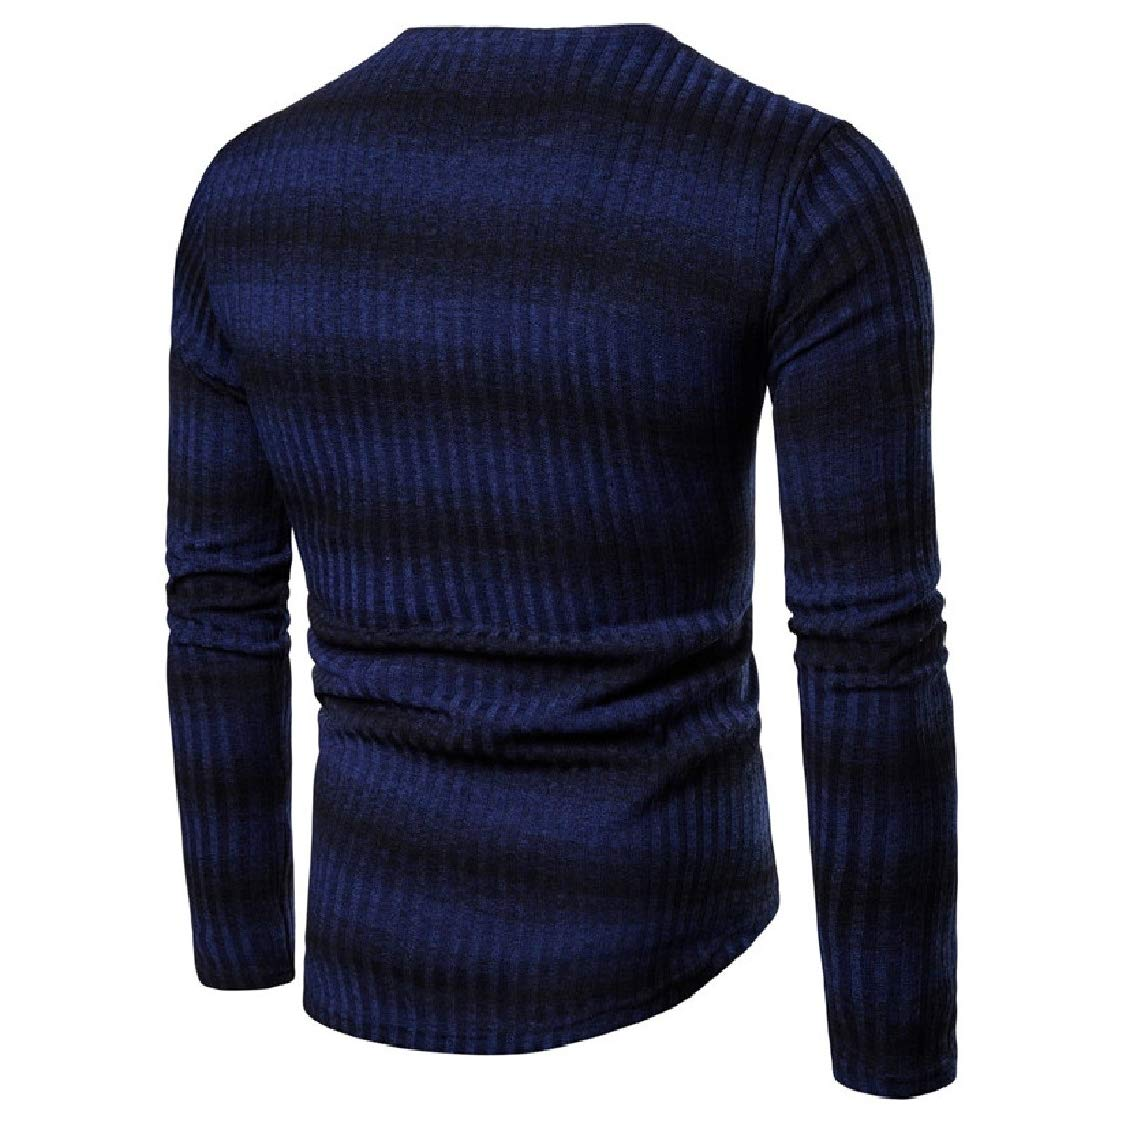 YUNY Men Stripes Pullover Silm Fit Spell Color Knitwear Crewneck Sweaters Navy Blue 2XL